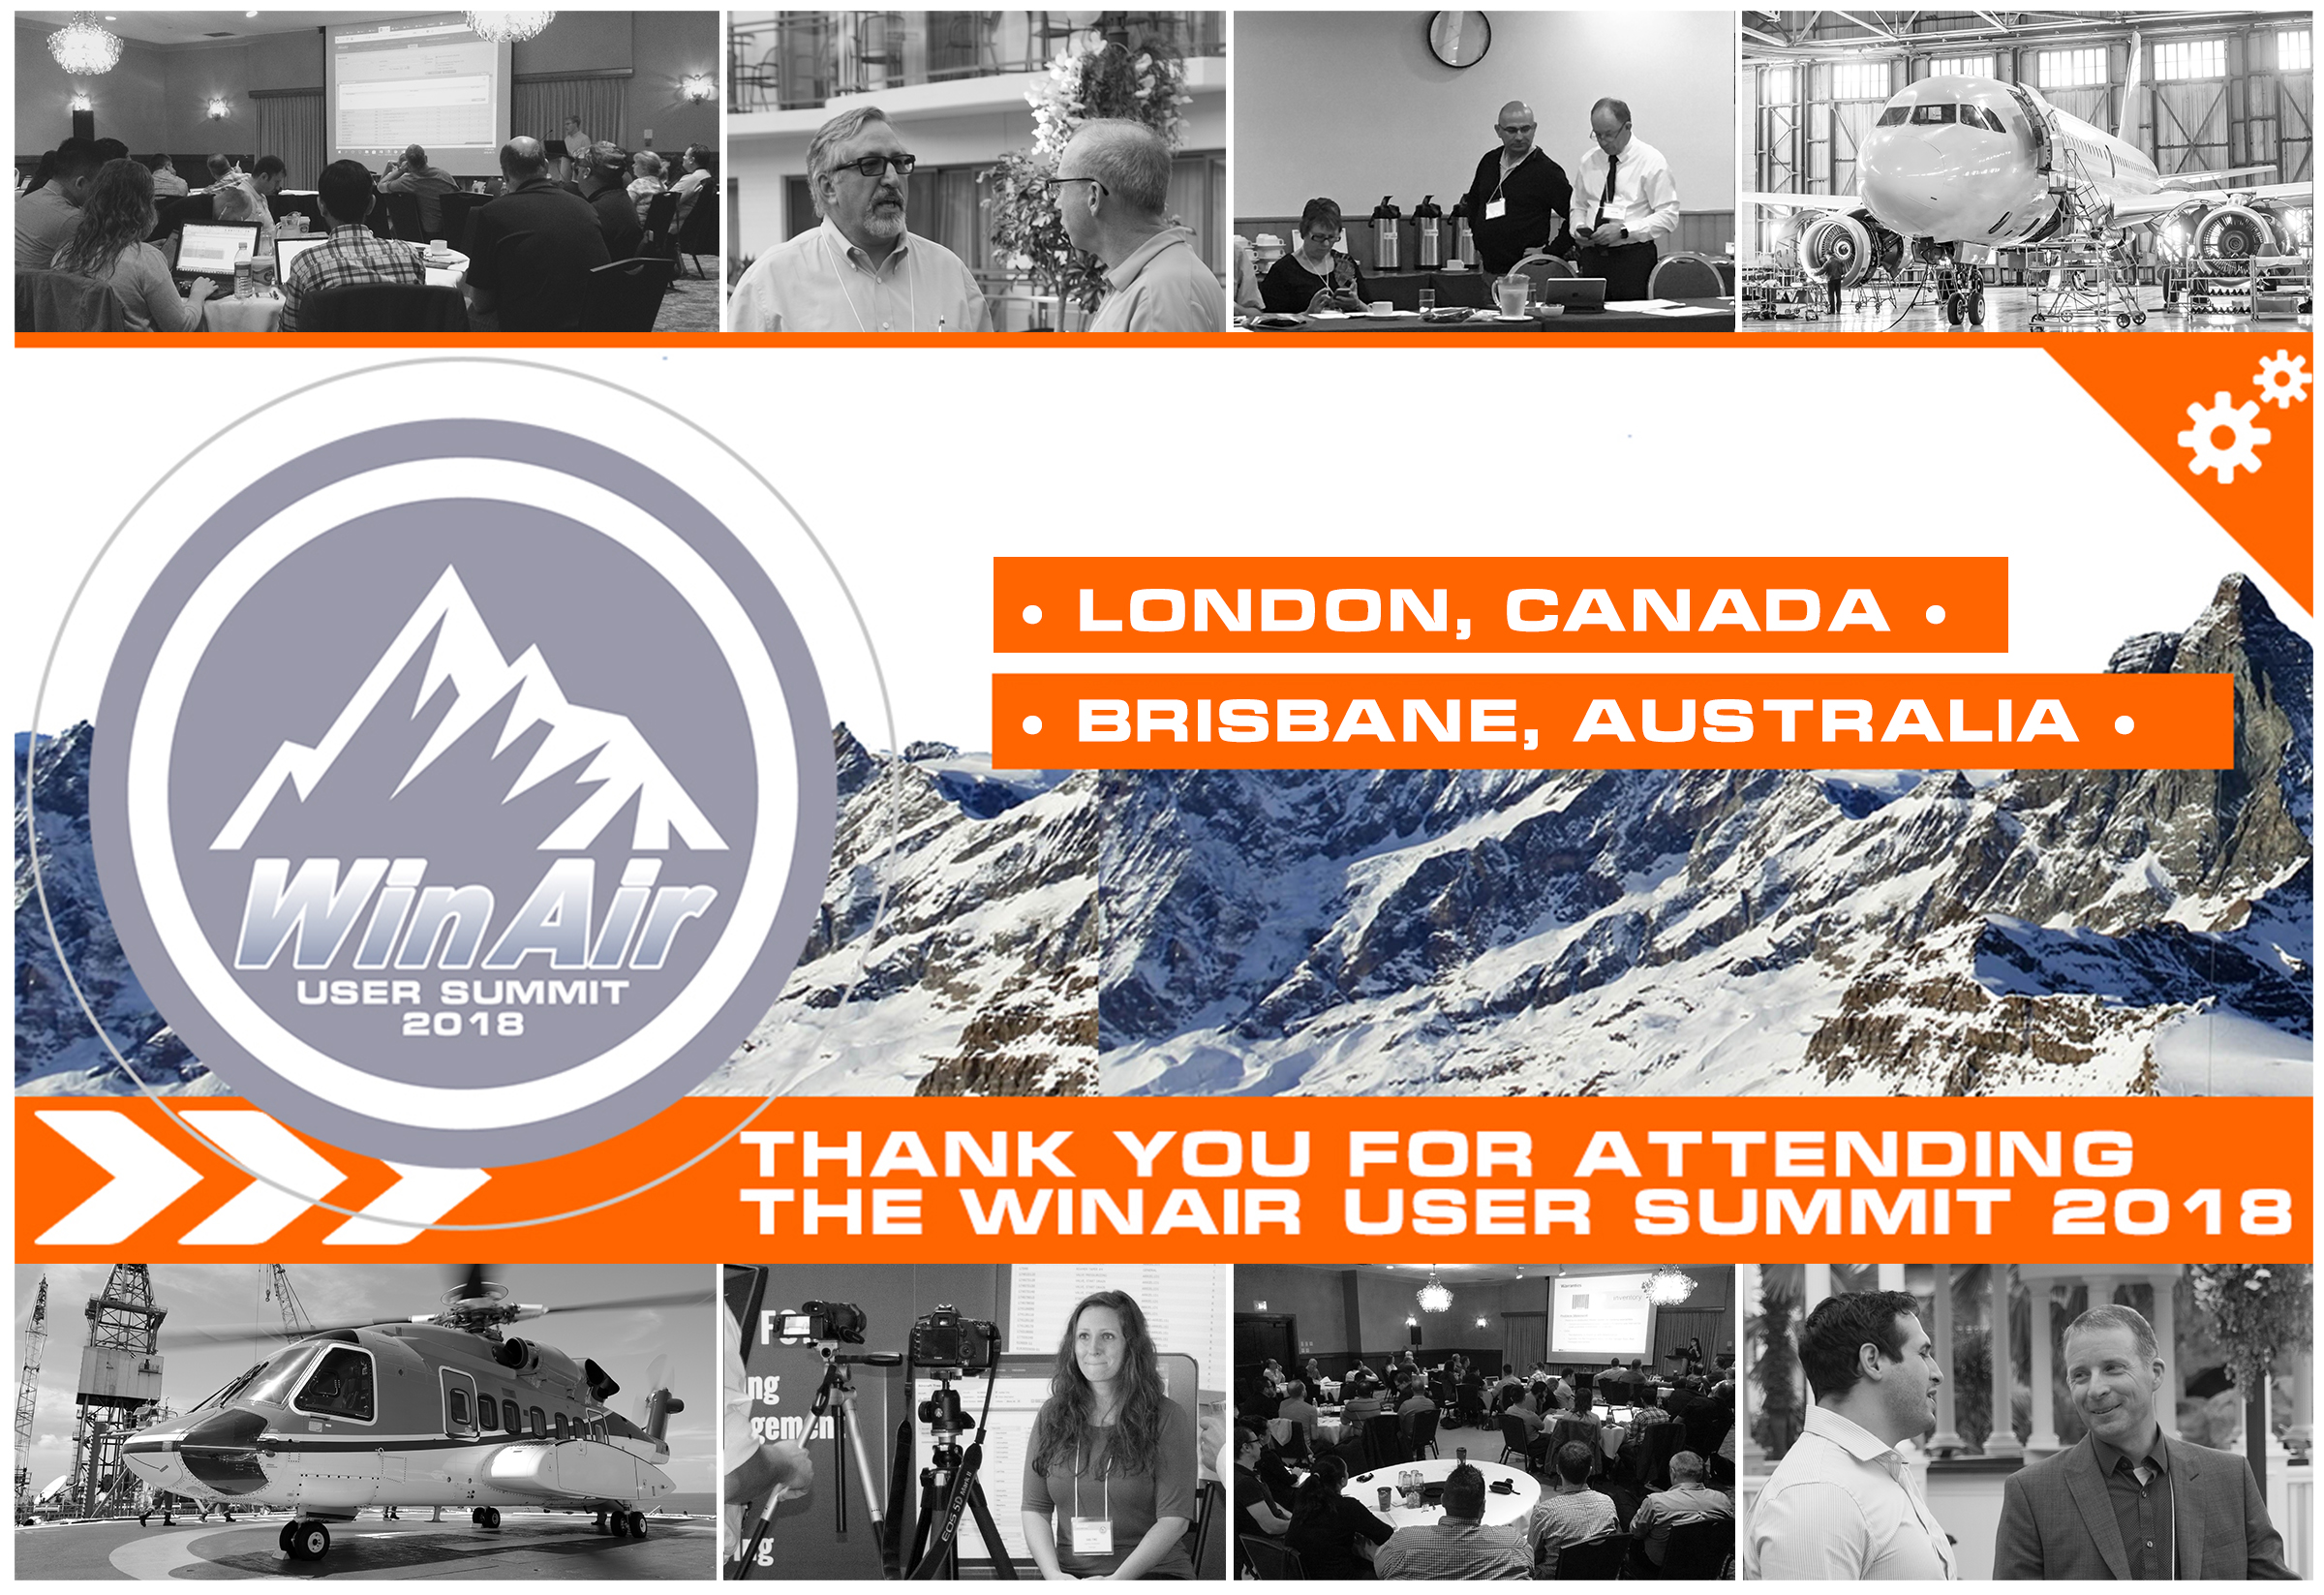 WinAir - User Summit 2018 - Thank You For Attending the Event - image